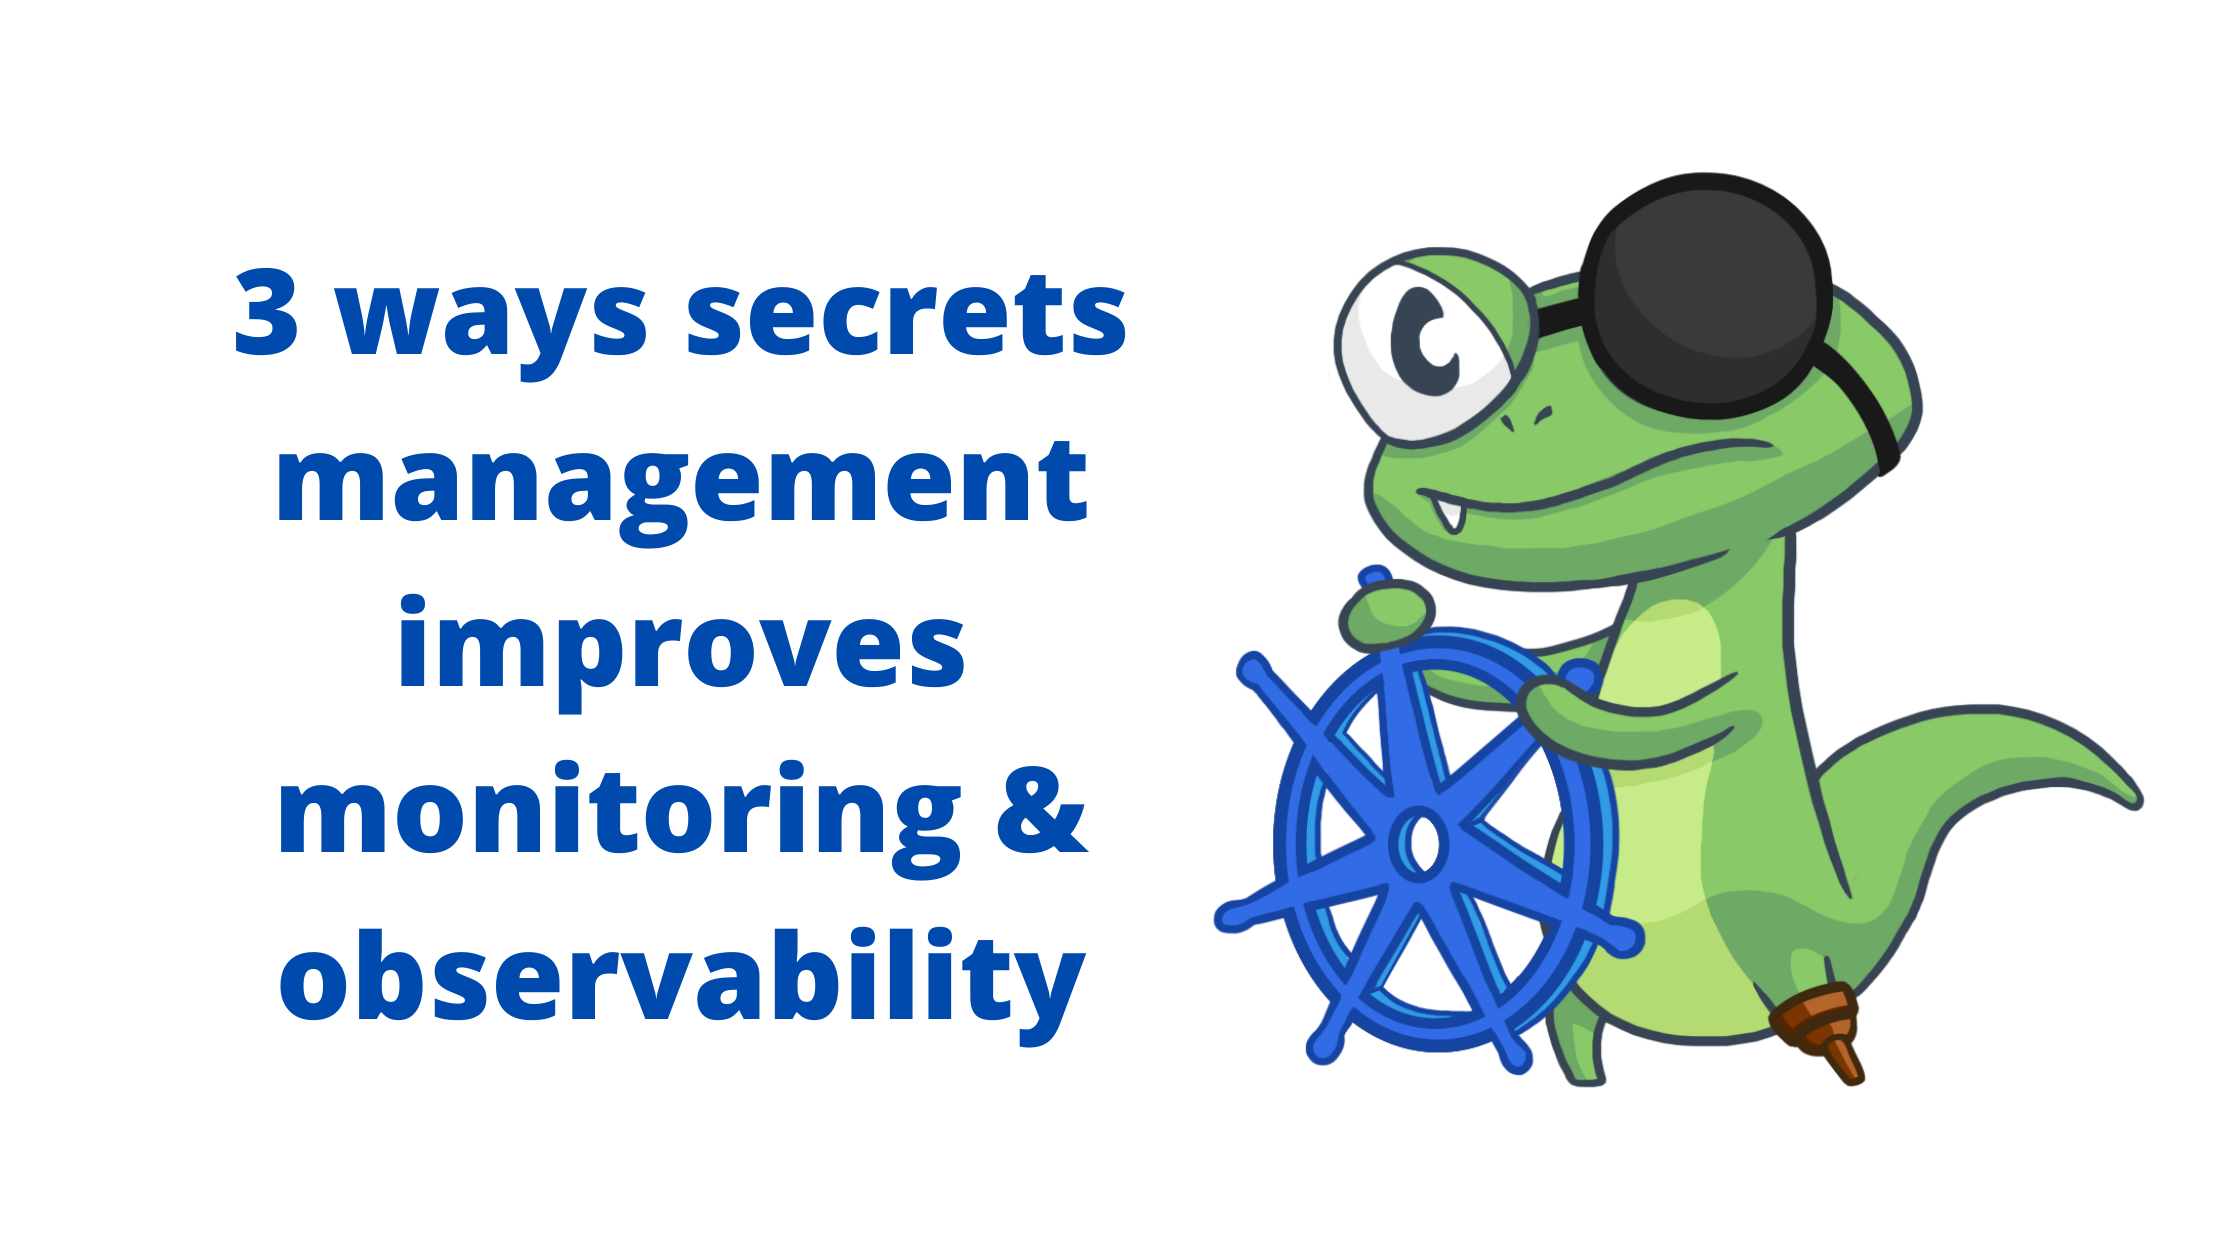 3 ways secrets management improves monitoring & observability